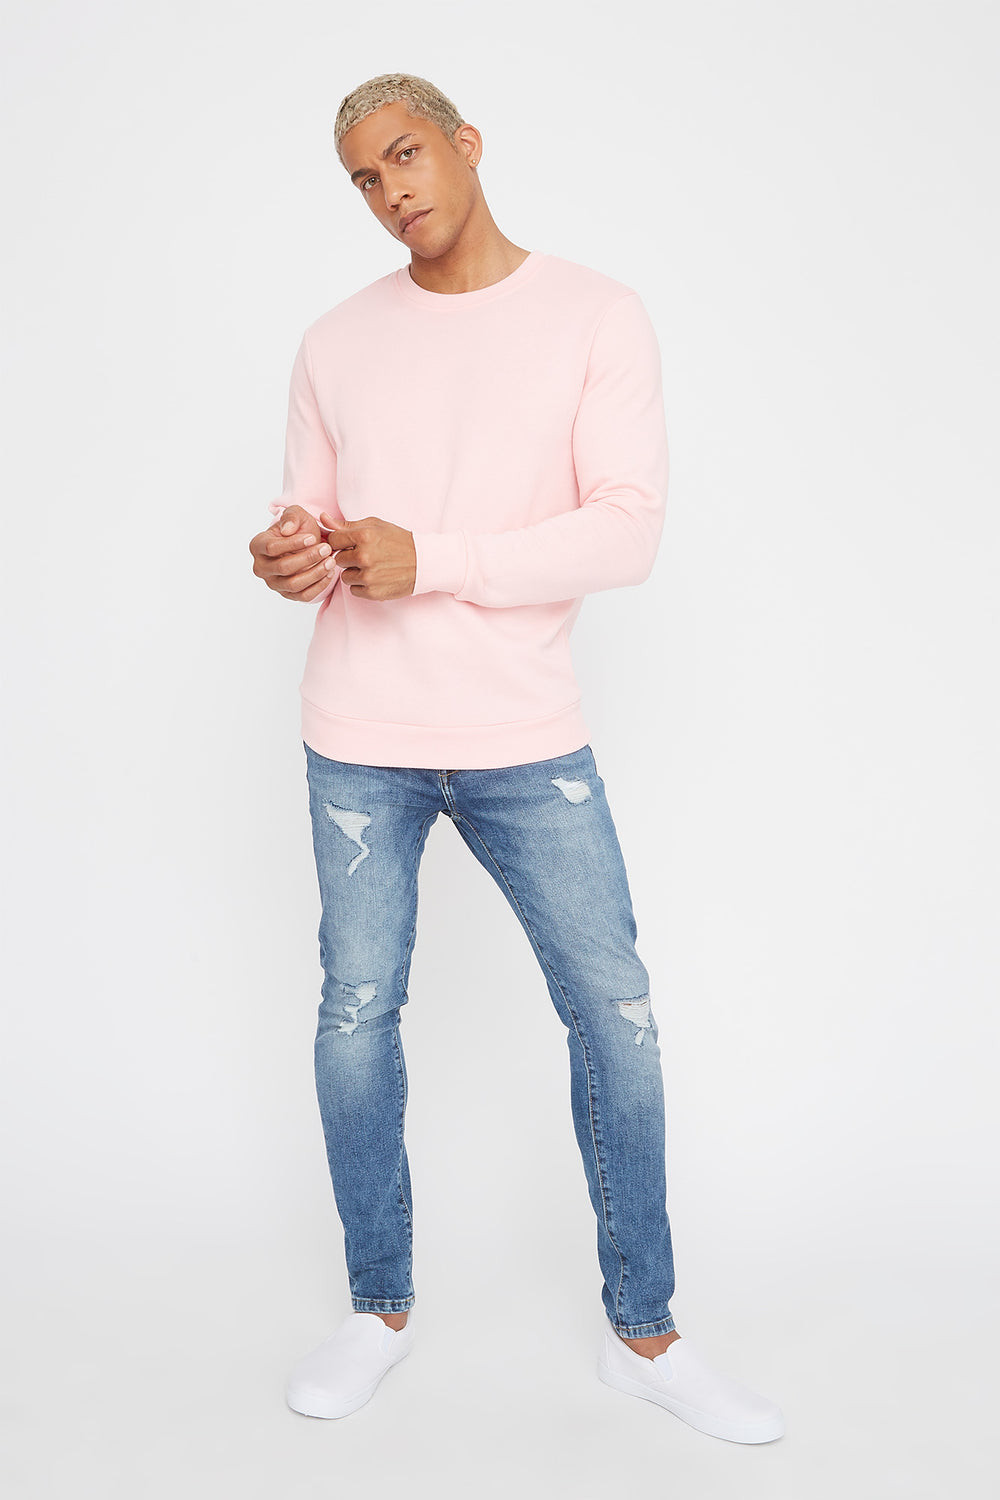 Solid Basic Crew Neck Sweater Light Pink